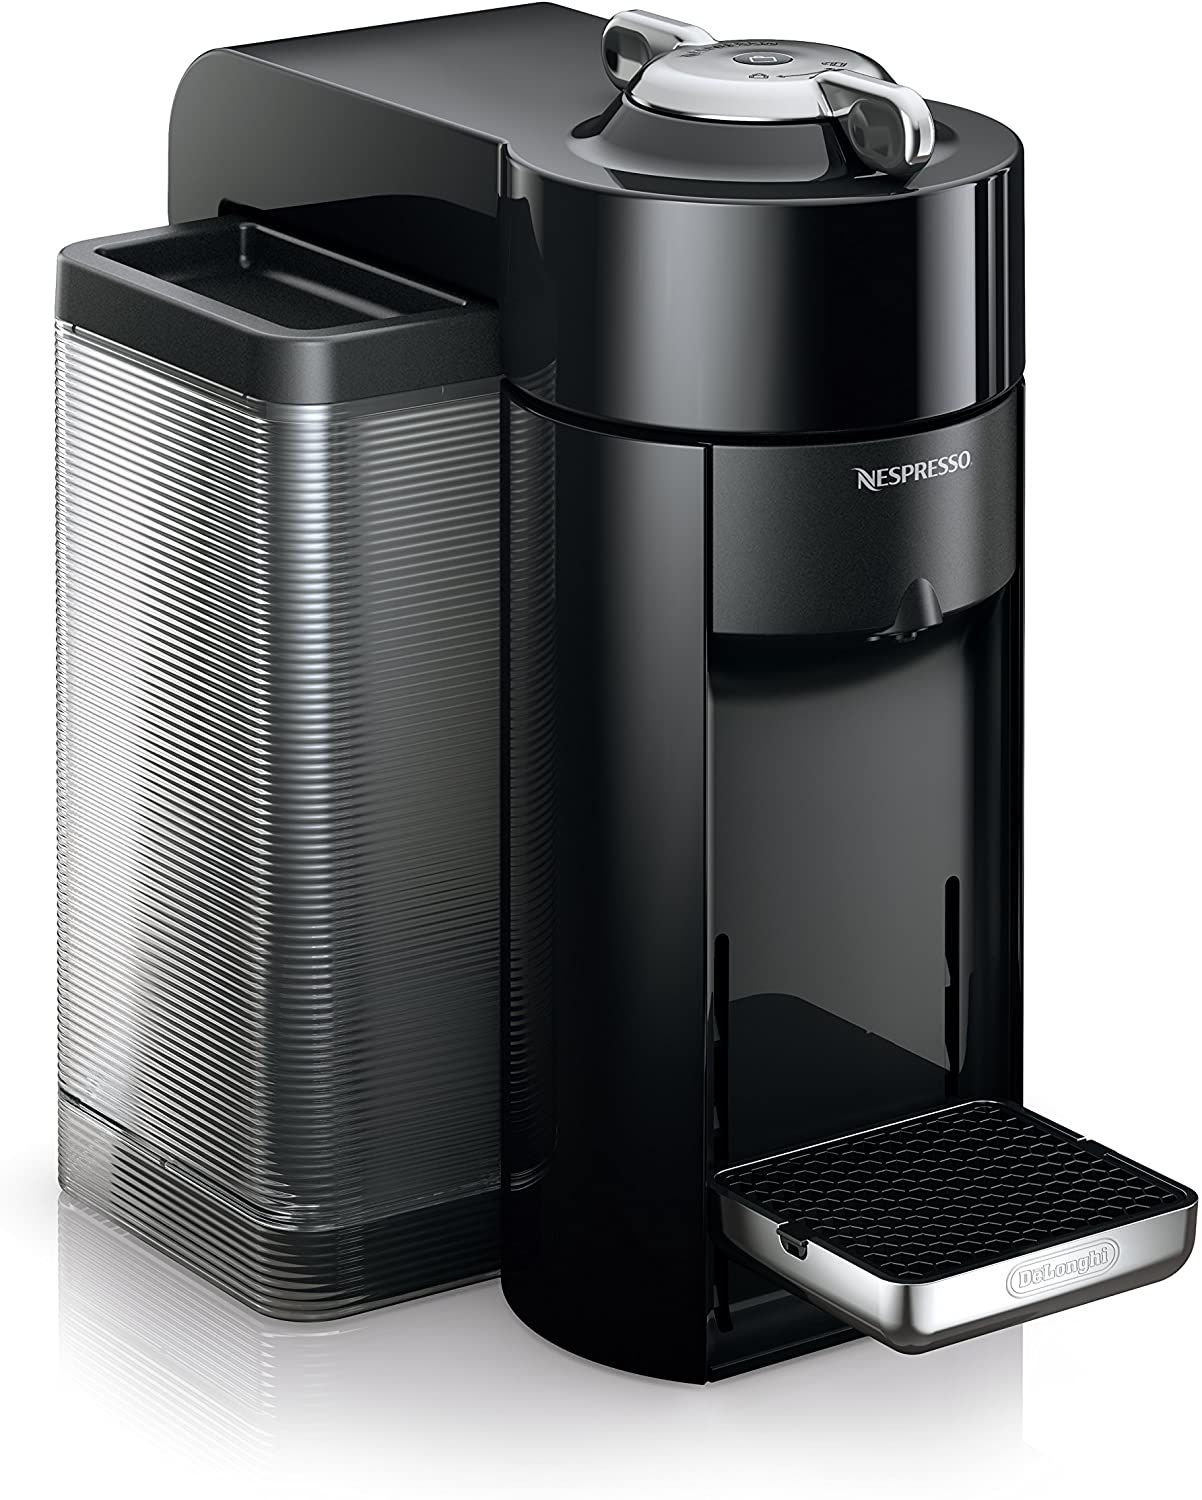 Top 7 Best Nespresso Machines Reviews 2020 Ultimate